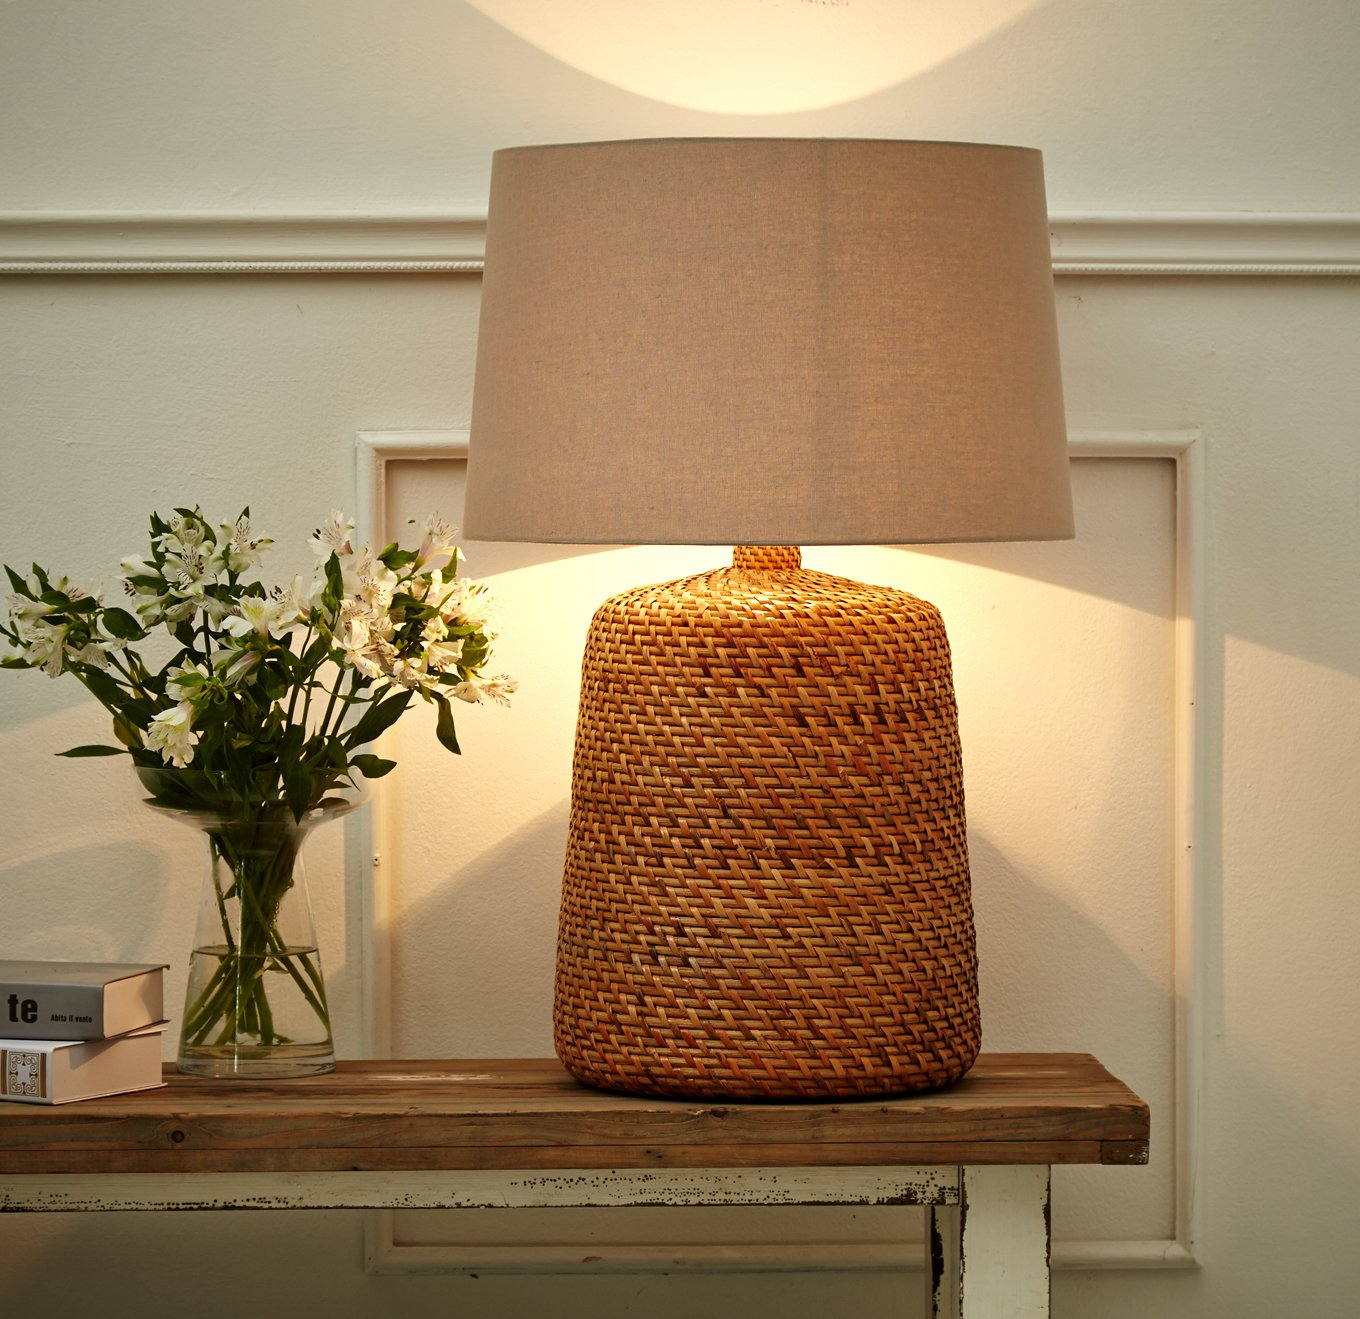 O'THENTIQUE Large Natural Rattan Wicker Table Lamp | Handmade Woven Basket with Premium Linen Shade Lamp | Handmade Coastal Nautical Tropical Design for Ocean Beach House Cabin Cottage Decor